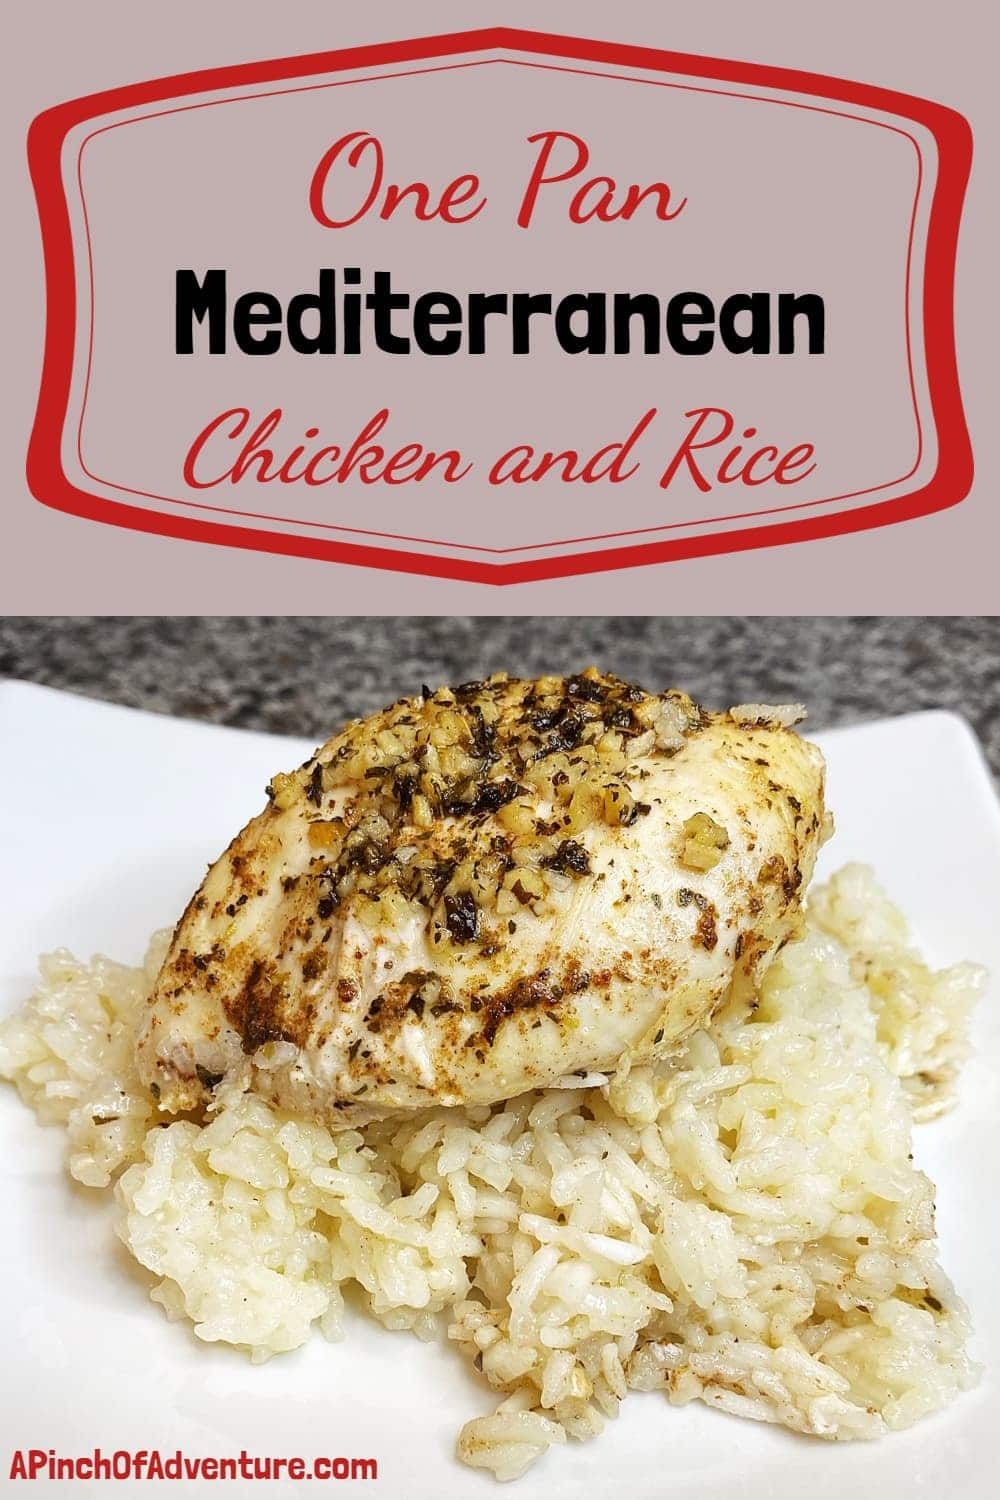 This easy Mediterranean baked chicken and rice dish is full of fresh flavors of lemon, garlic and mint. This one pan chicken dinner idea has it all. It is a quick, delicious and healthy one pan dinner recipe with a Lebanese flare. #healthydinner #recipe #chickendinner #easymeal #onepan #sheetpan #healthyfood #glutenfree #dairyfree #delicious